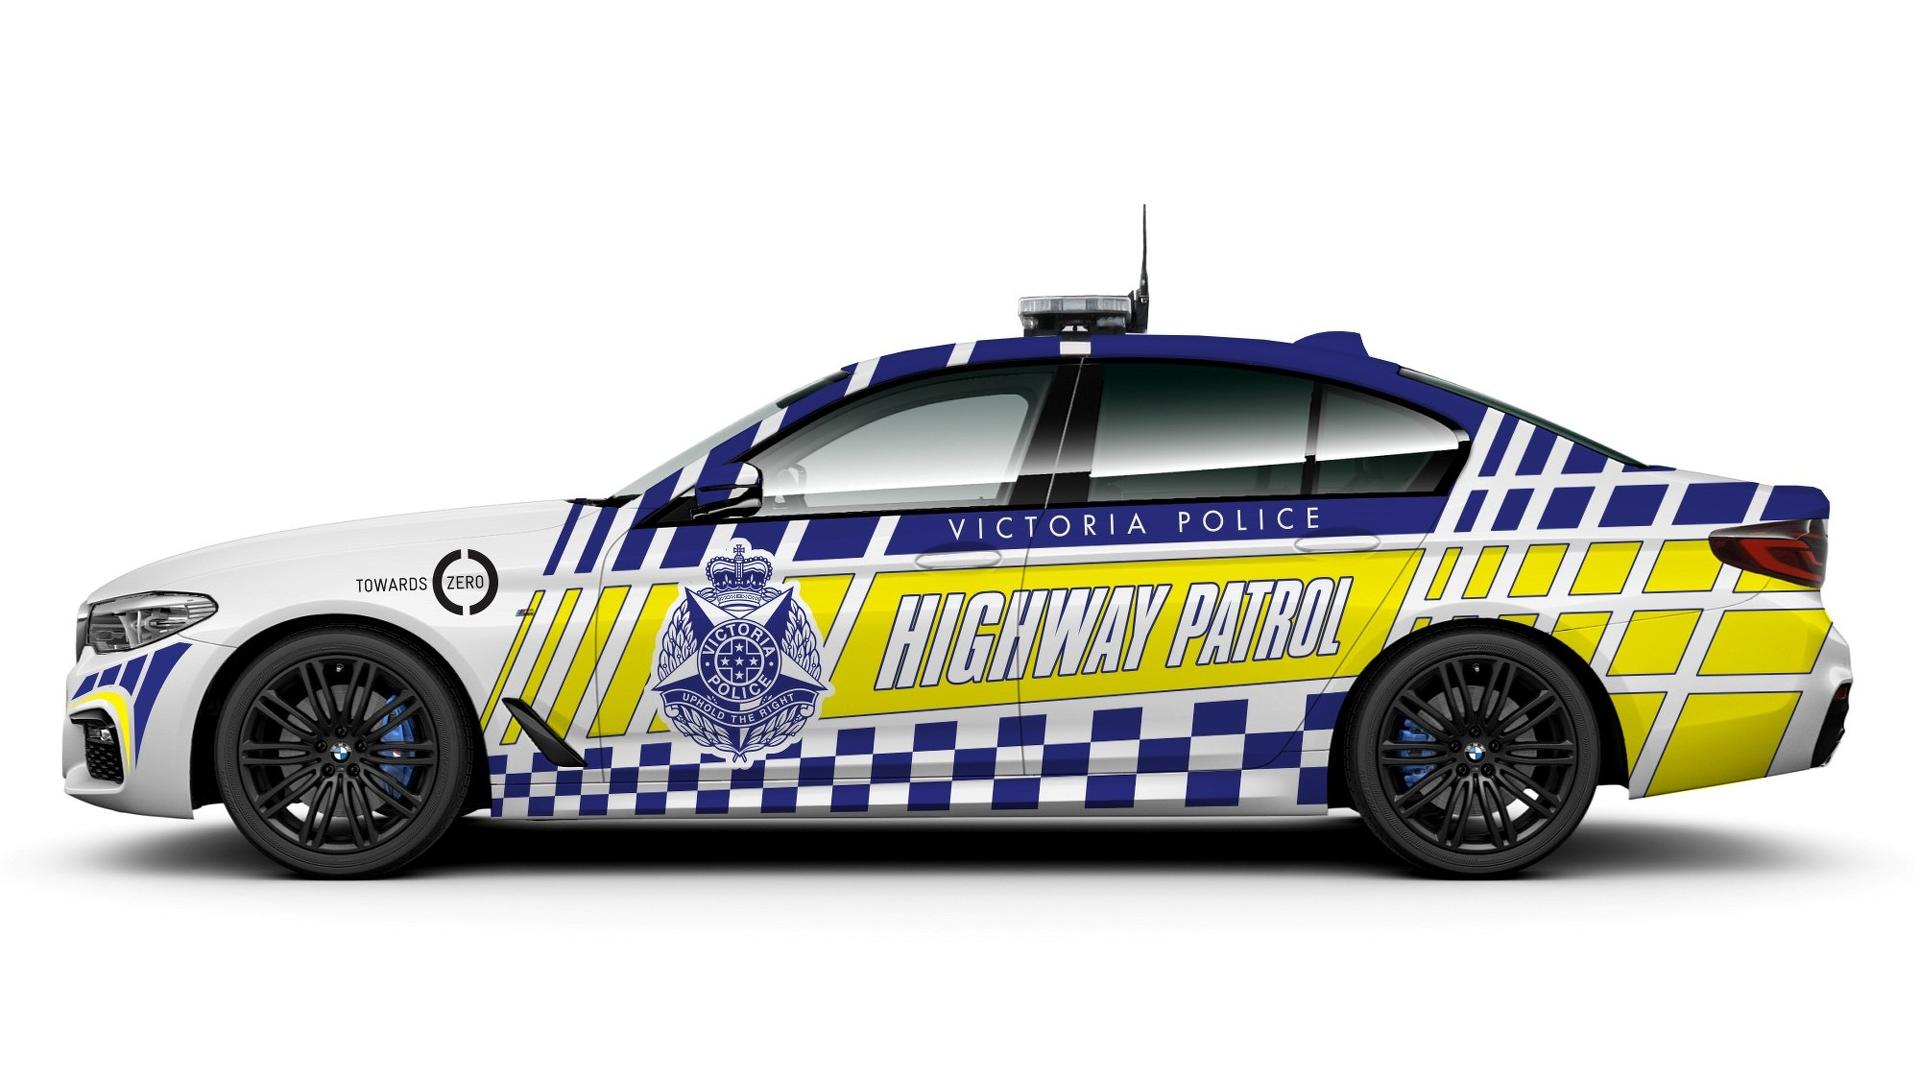 1920x1080 2017 Bmw 530d Police Cars Yes, In Victoria, Australia